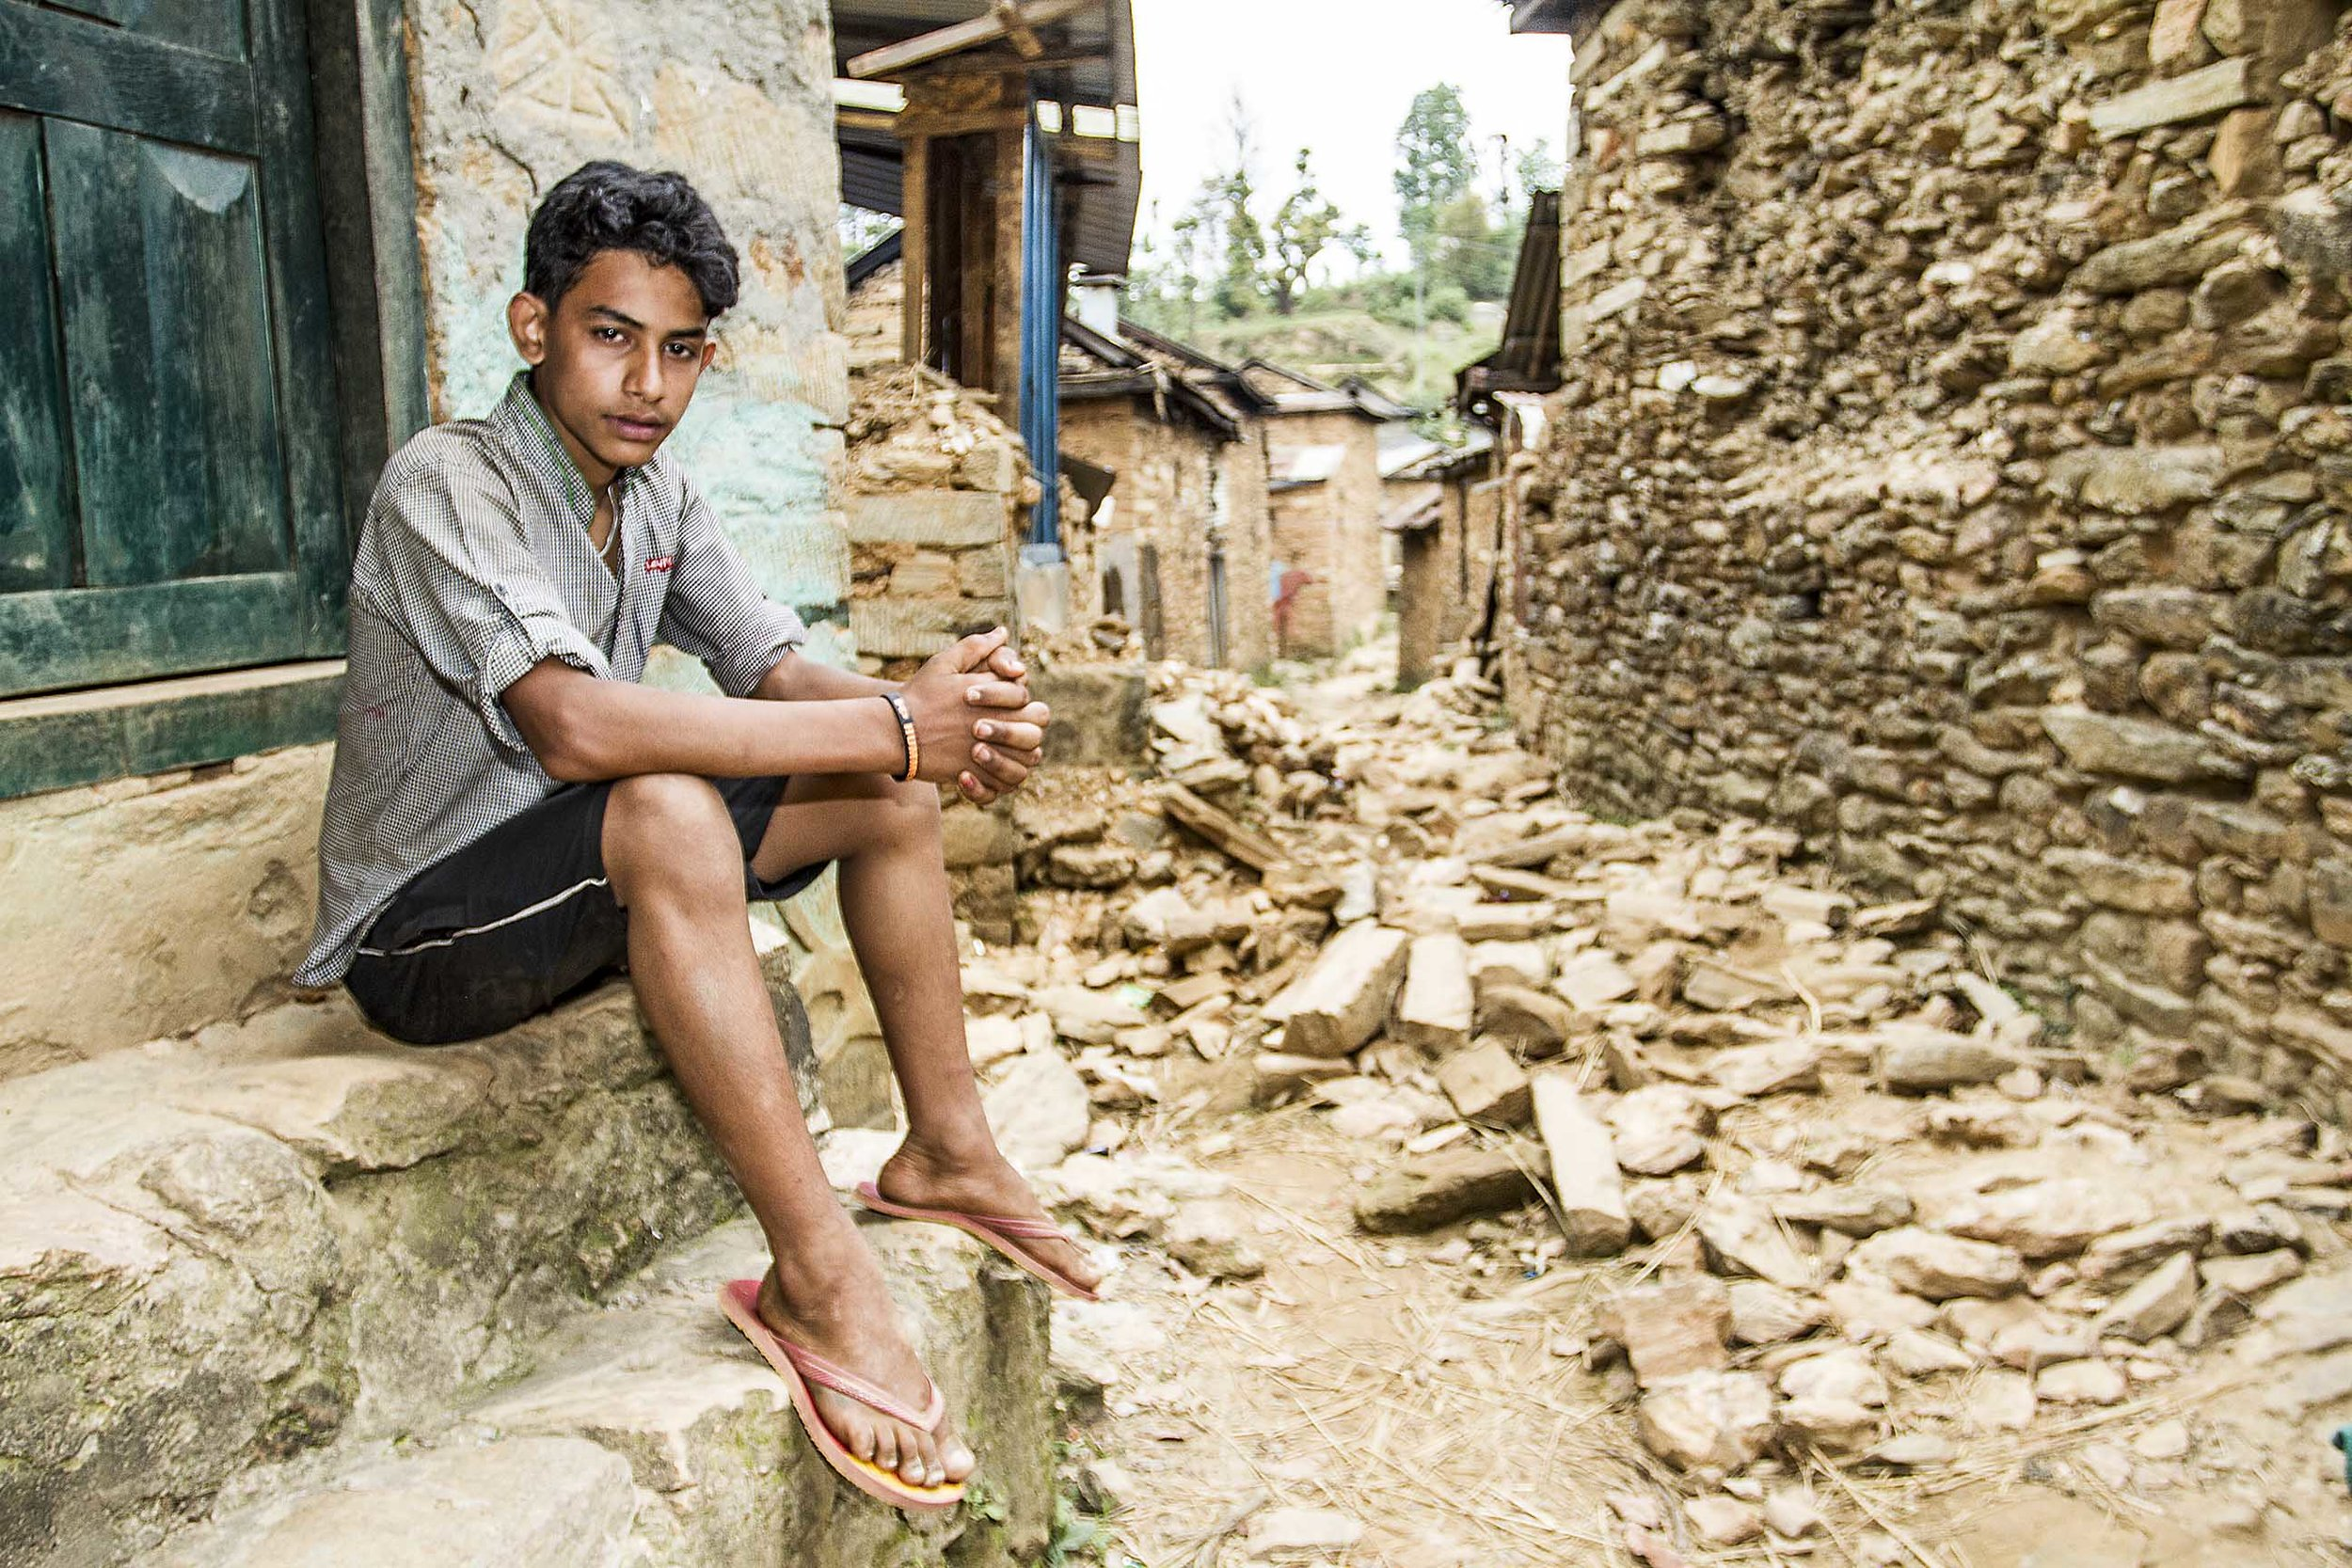 "Nepal Earthquake   Akhtar, like many young men from the area, migrated to India for better work opportunities, made all the more easier with the bilateral agreement where by the citizens of both countries do not require a visa. Working in a restaurant in Delhi for the past 3years, Akhtar earns a meagre salary but more than he would earn if he worked locally on the terraces or in the nearby town of Gorkha.  On the day of the earthquake Akhtar discovered what happened through social media.  ""I tried to call home immediately but the line was always busy""  After a desperate 2 days trying to reach his family he gets through, and to his relief discovers that no one was hurt.  ""I left for home as soon as I could, firstly it was a 12hr night bus to the border with Nepal, and then another 18hrs to get home, there was so much traffic leaving the country""  When he arrived home he could see that people were living on the roadside under tarpaulin sheets, and had little food.  ""Coming home was upsetting, especially seeing what was left of the family home""  ""The support that [you] have provided here has been really helpful, especially the additional tarpaulin""   Akhtar - Oxfam Beneficiary, Gorkha, Nepal"